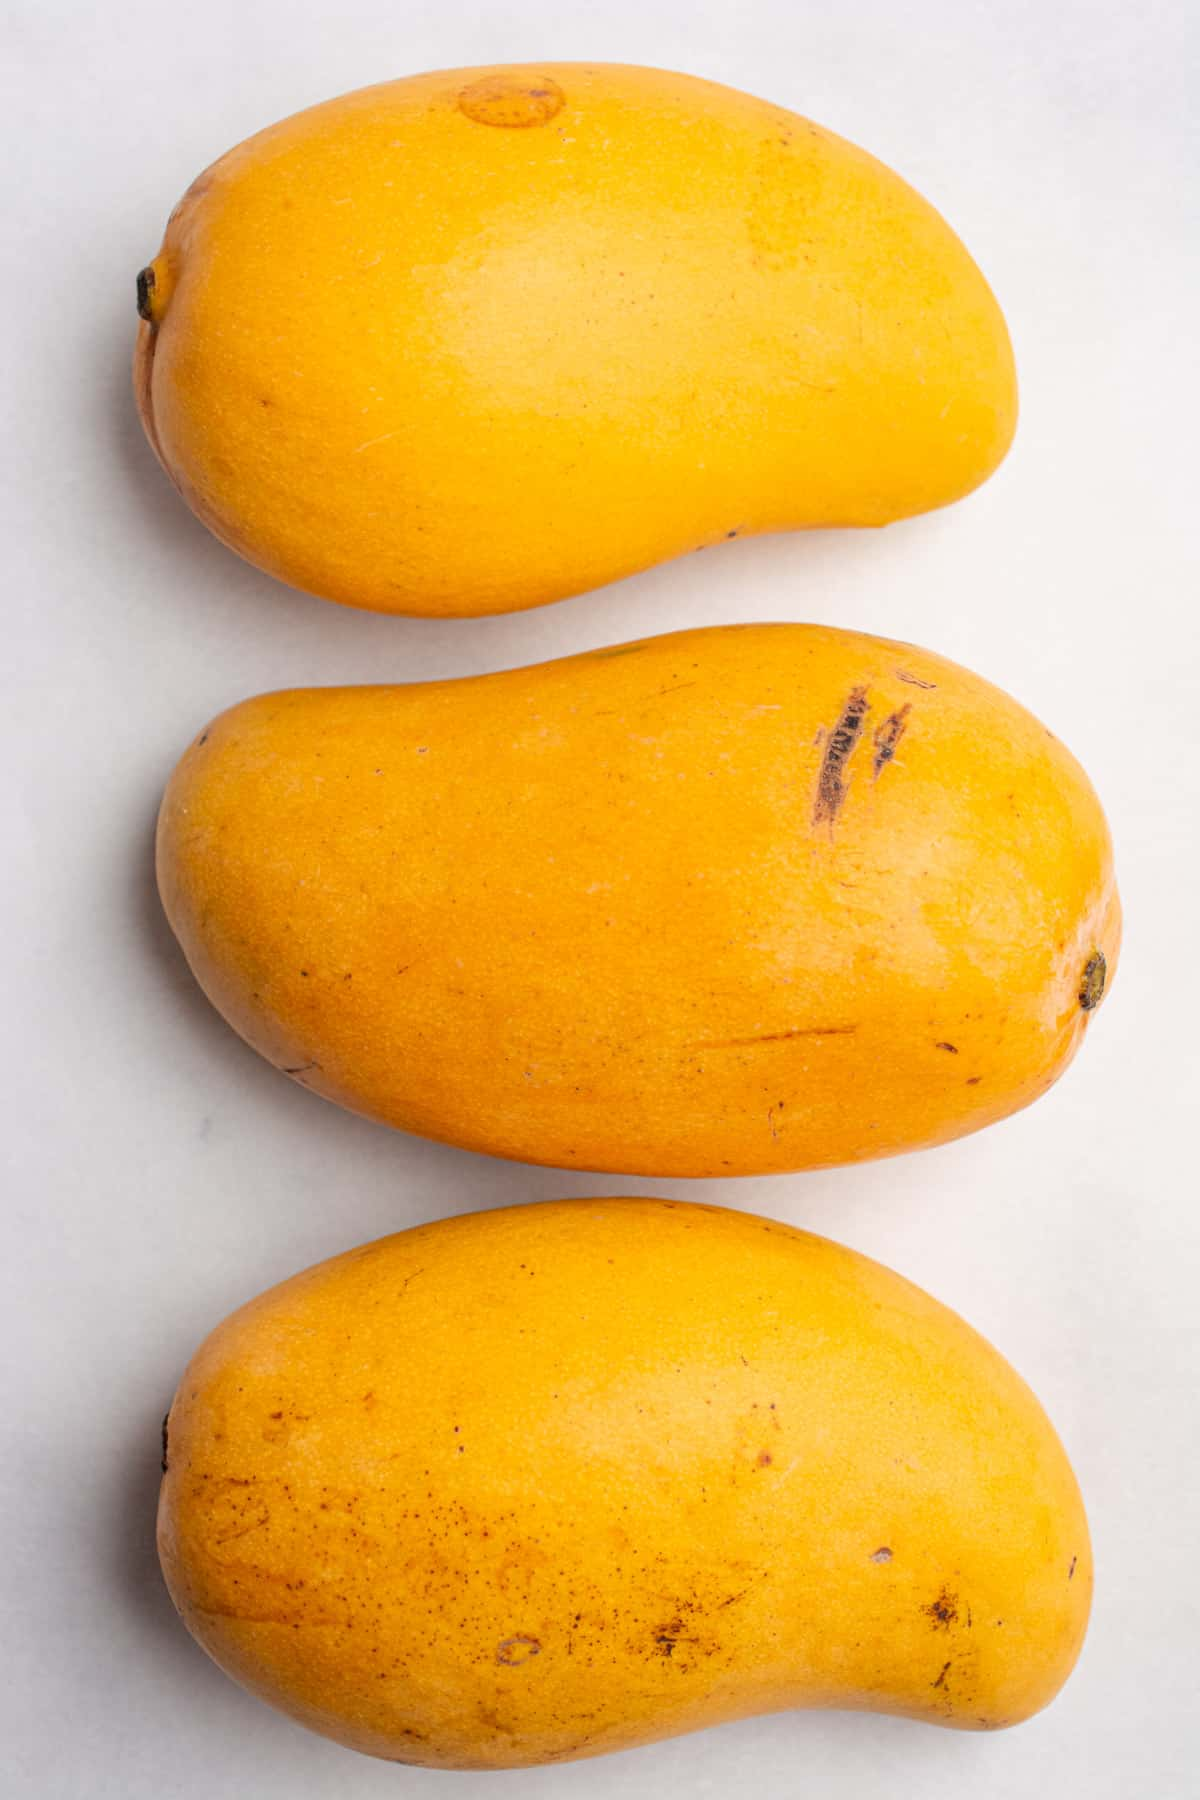 Three honey mangoes lined up on a white background.